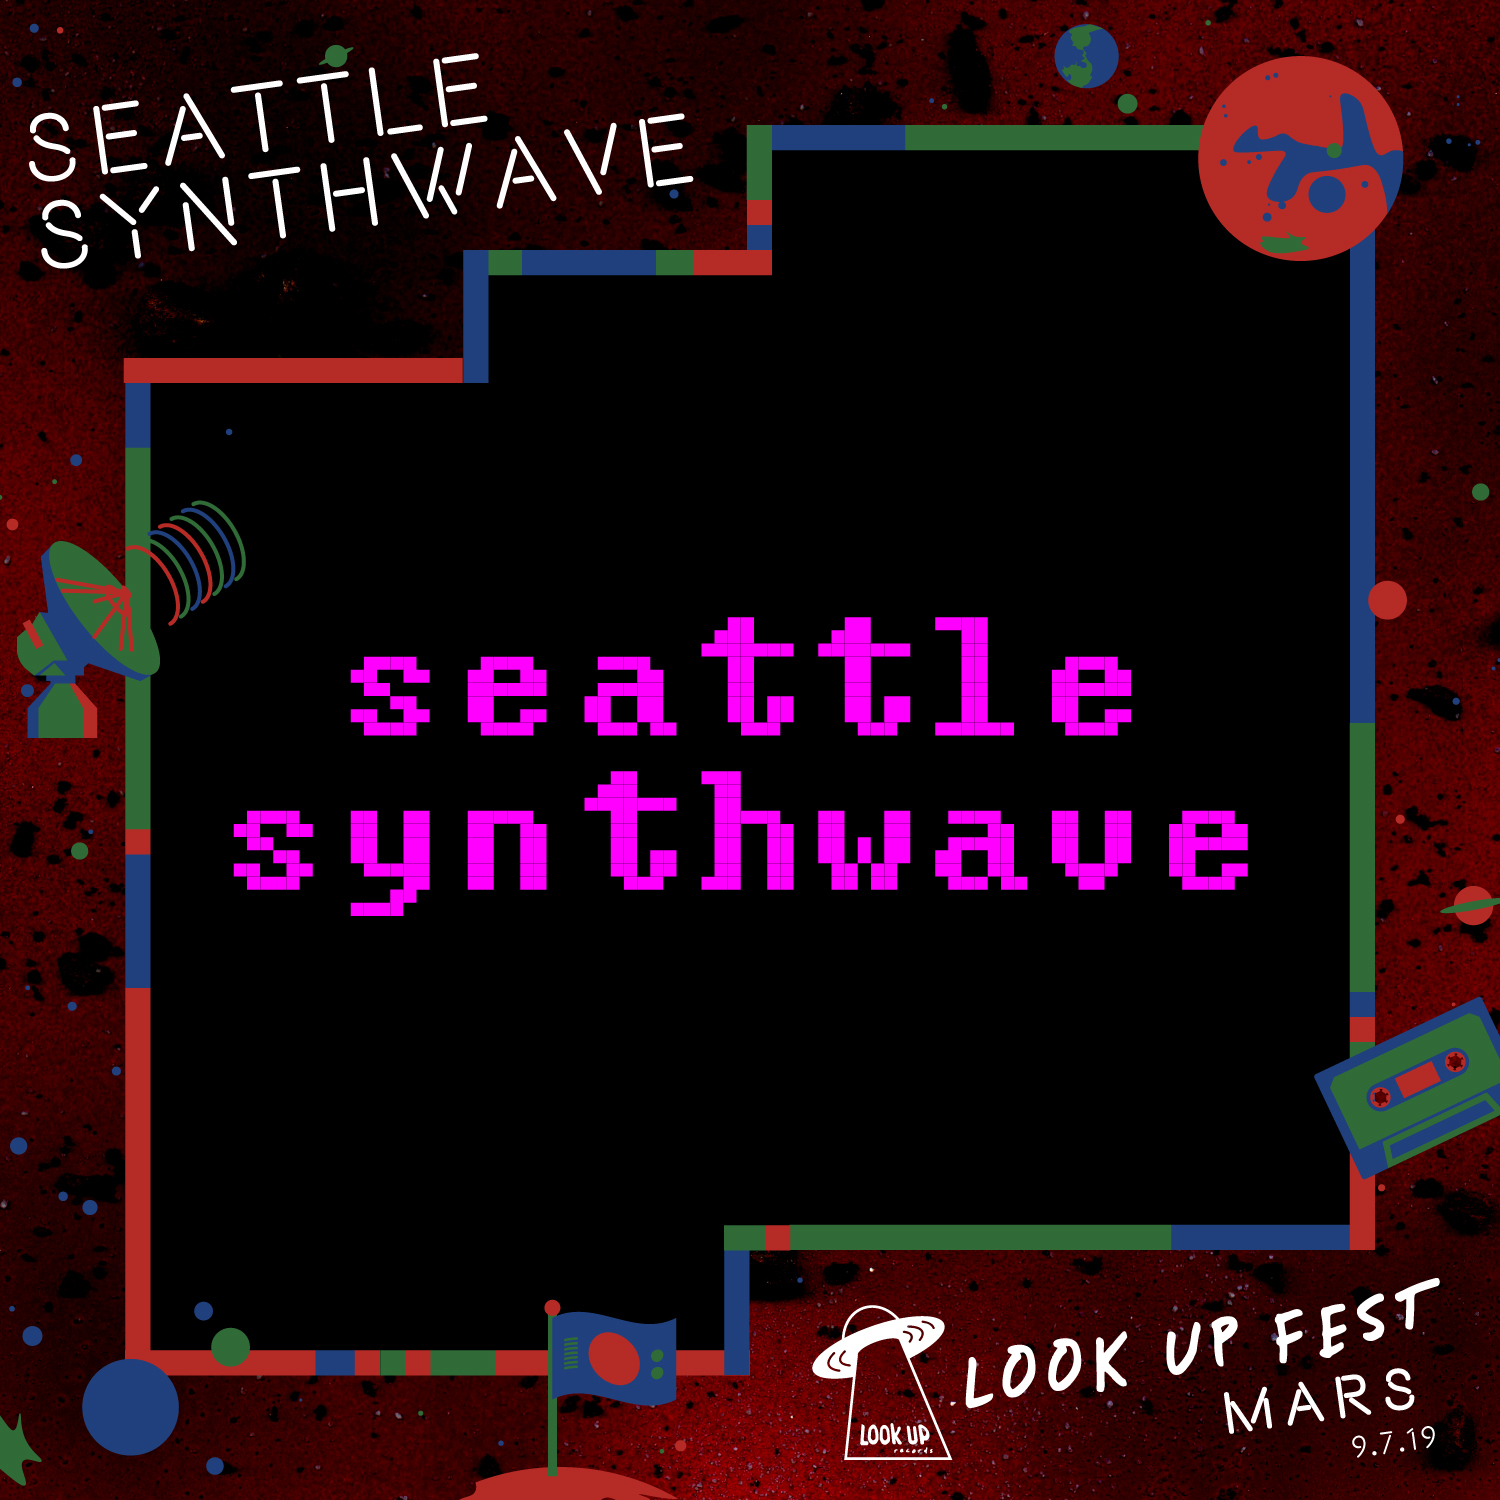 SEATTLE SYNTHWAVE - Seattle Synthwave is an electronic music resource for people in the Pacific Northwest (and beyond). We handle promotion, photography, and booking for synth acts. Seattle Synthwave is a non-profit project. Follow Seattle Synthwave to keep up to date on artists, new releases, concerts and news.